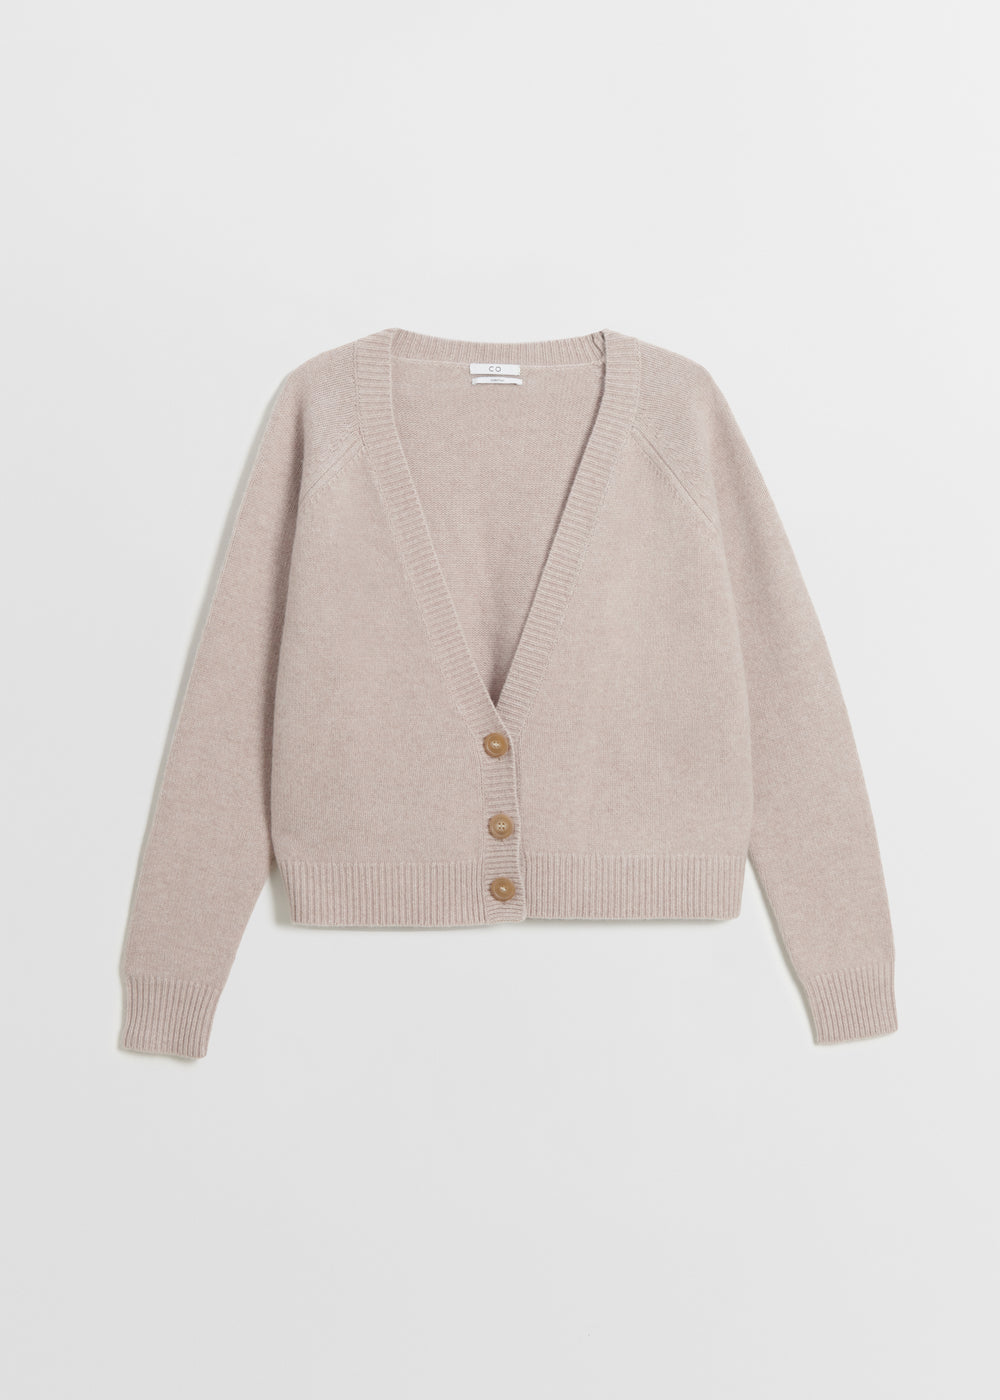 Cropped Cardigan in Boiled Cashmere - Light Grey in Sand Melange by Co Collections